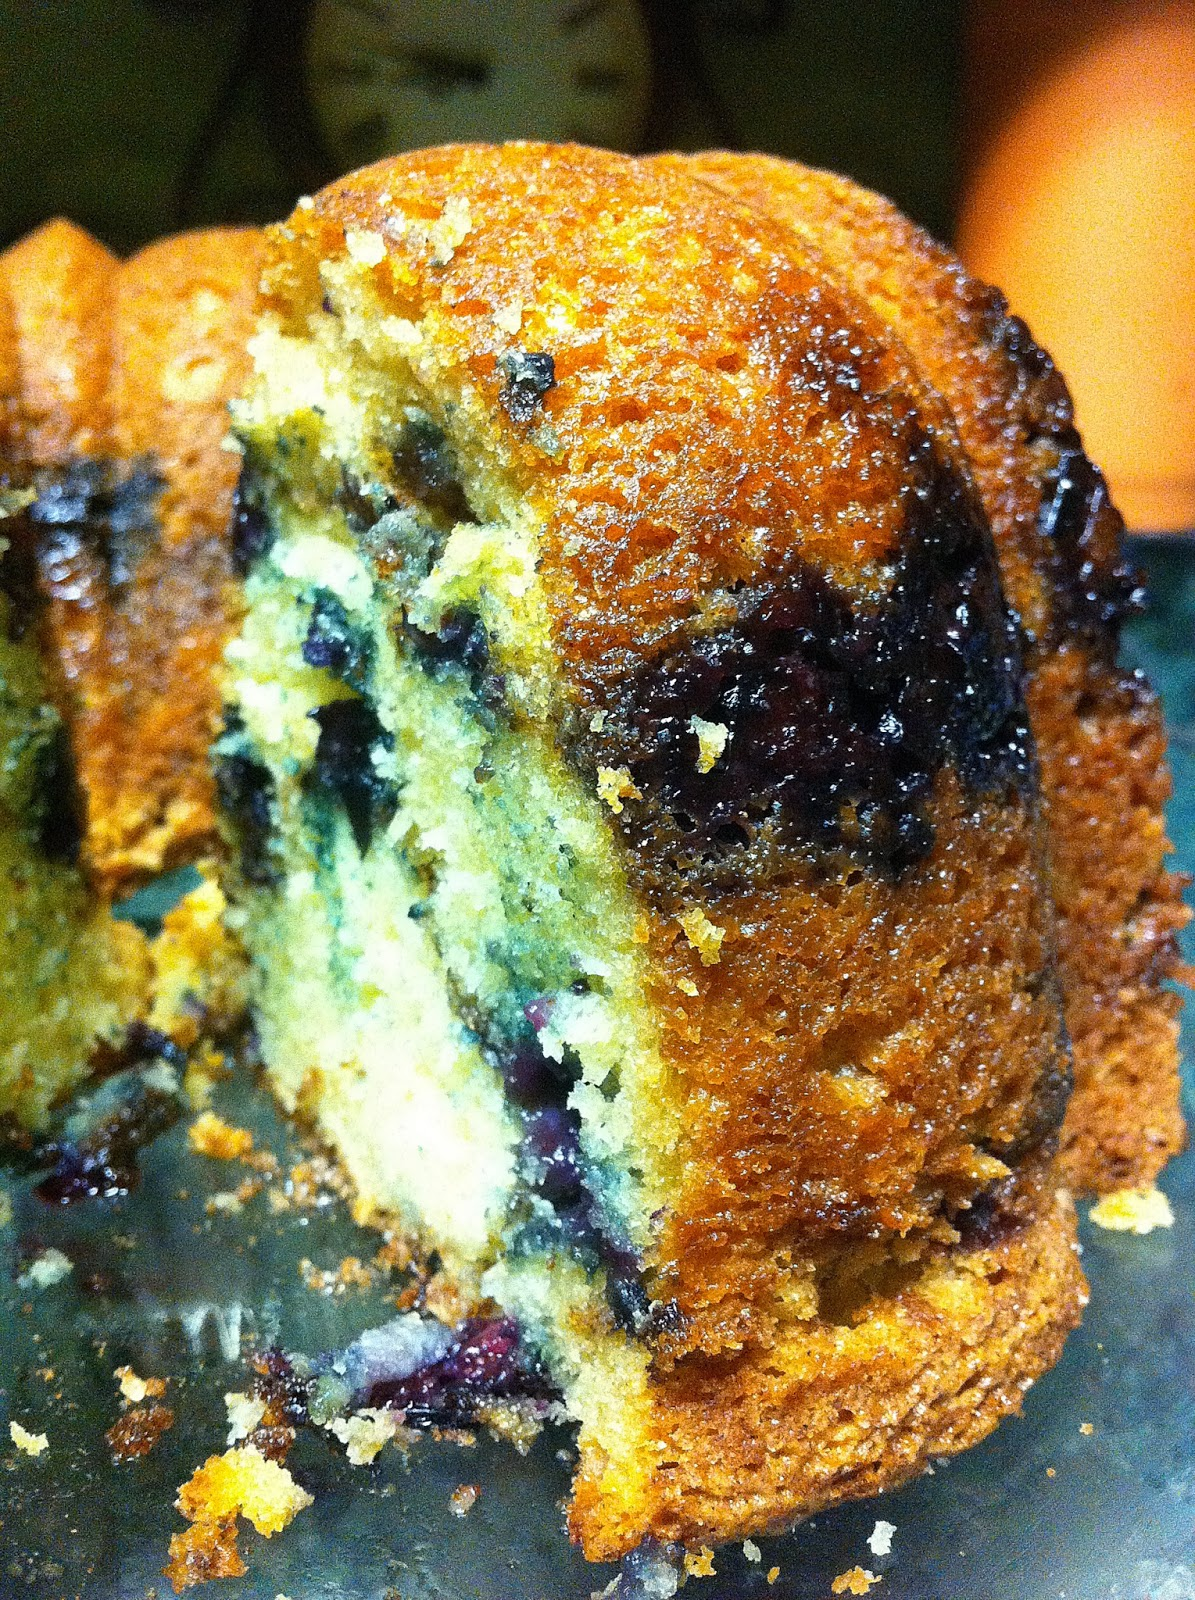 Blueberry Sour Cream Coffee Cake | Cook'n is Fun - Food Recipes ...